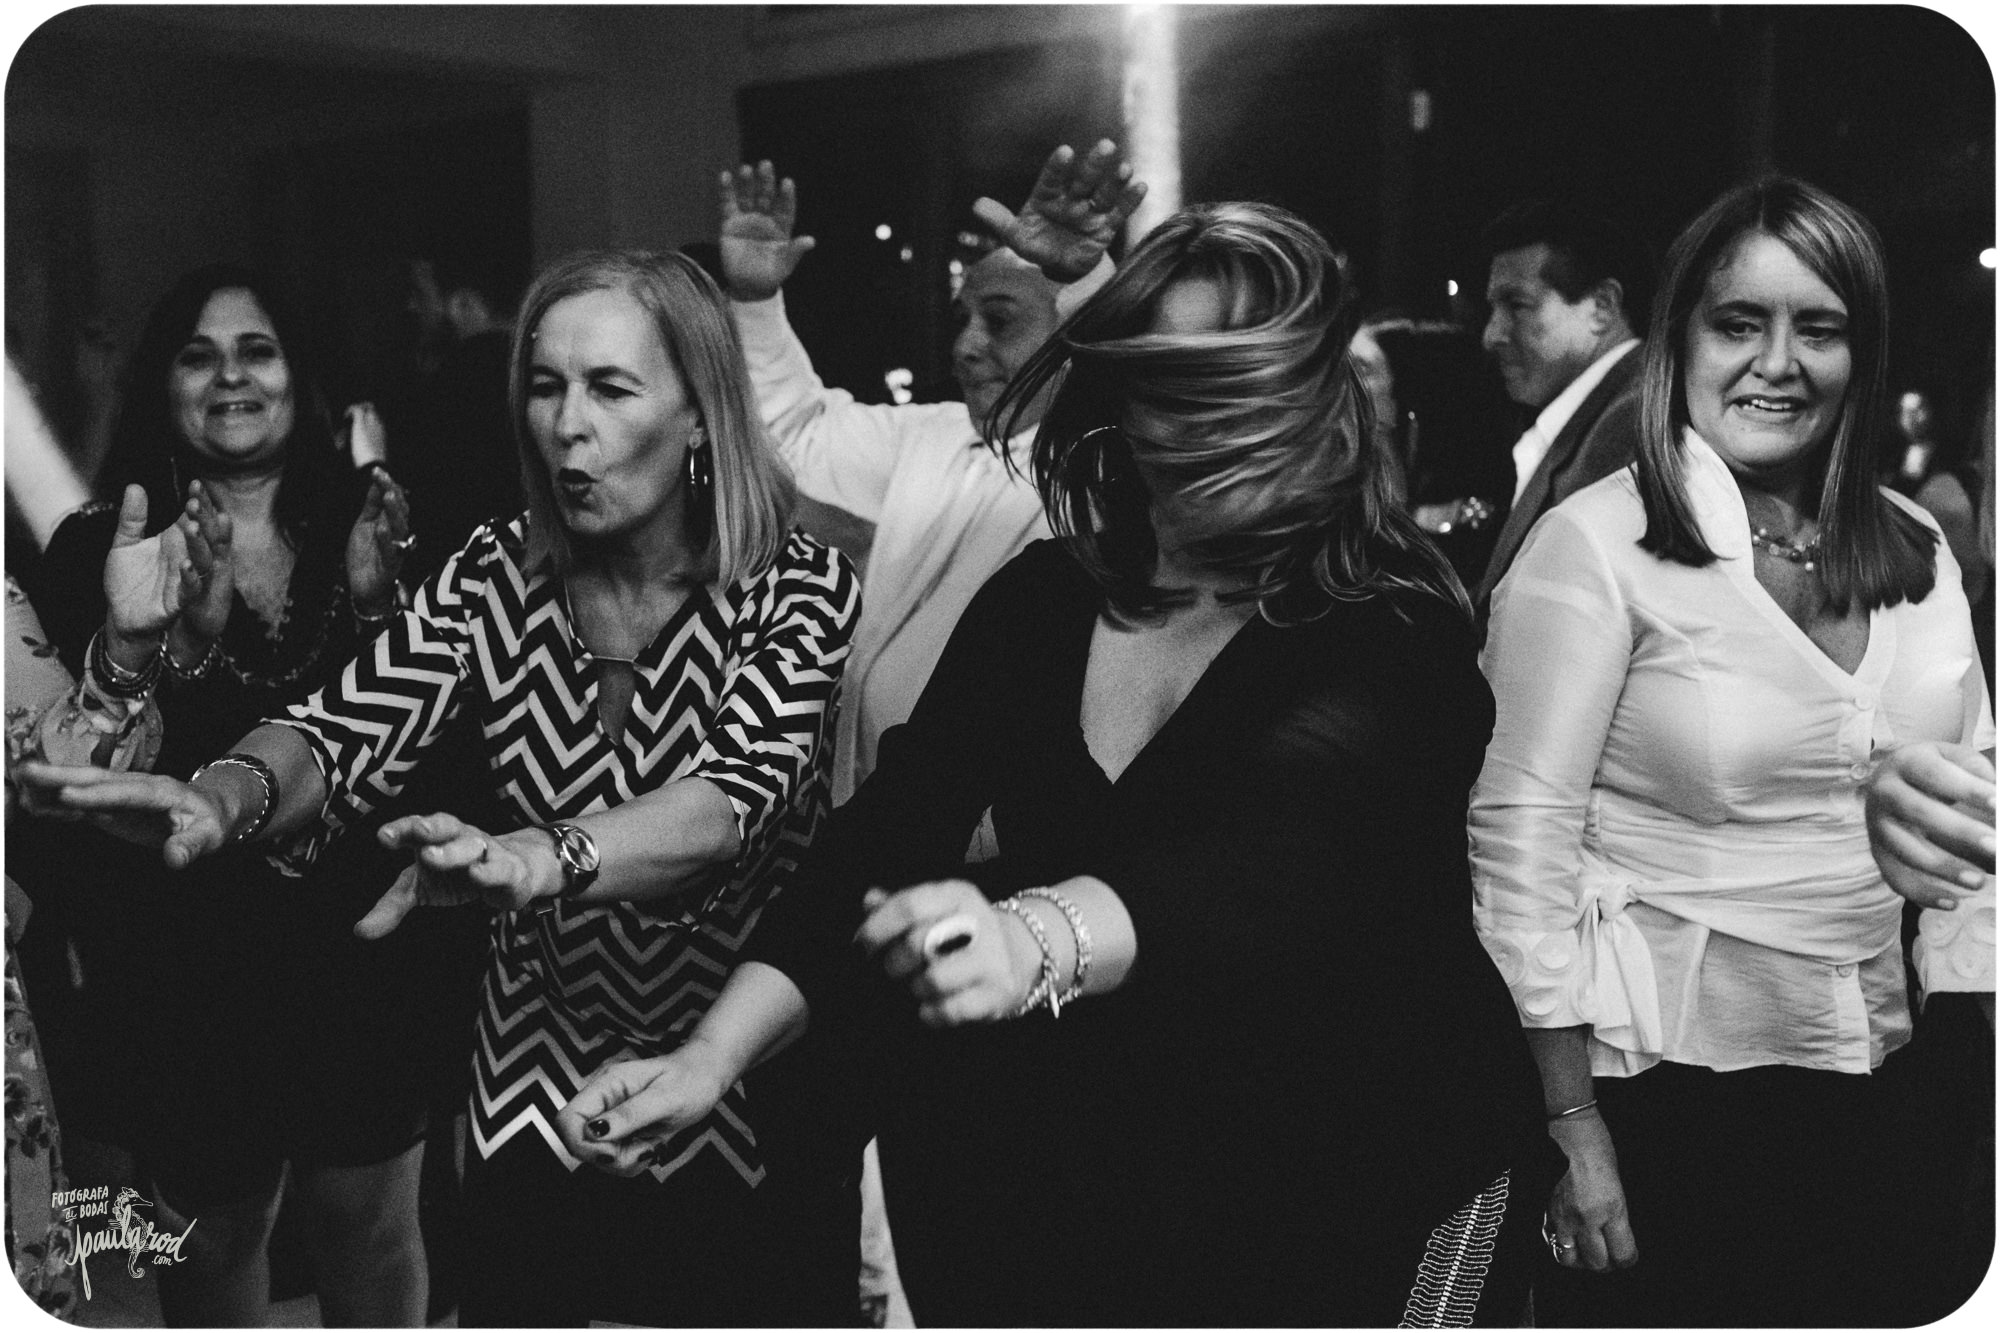 fotografia-documental-para-eventos-sociales-4 (5).jpg